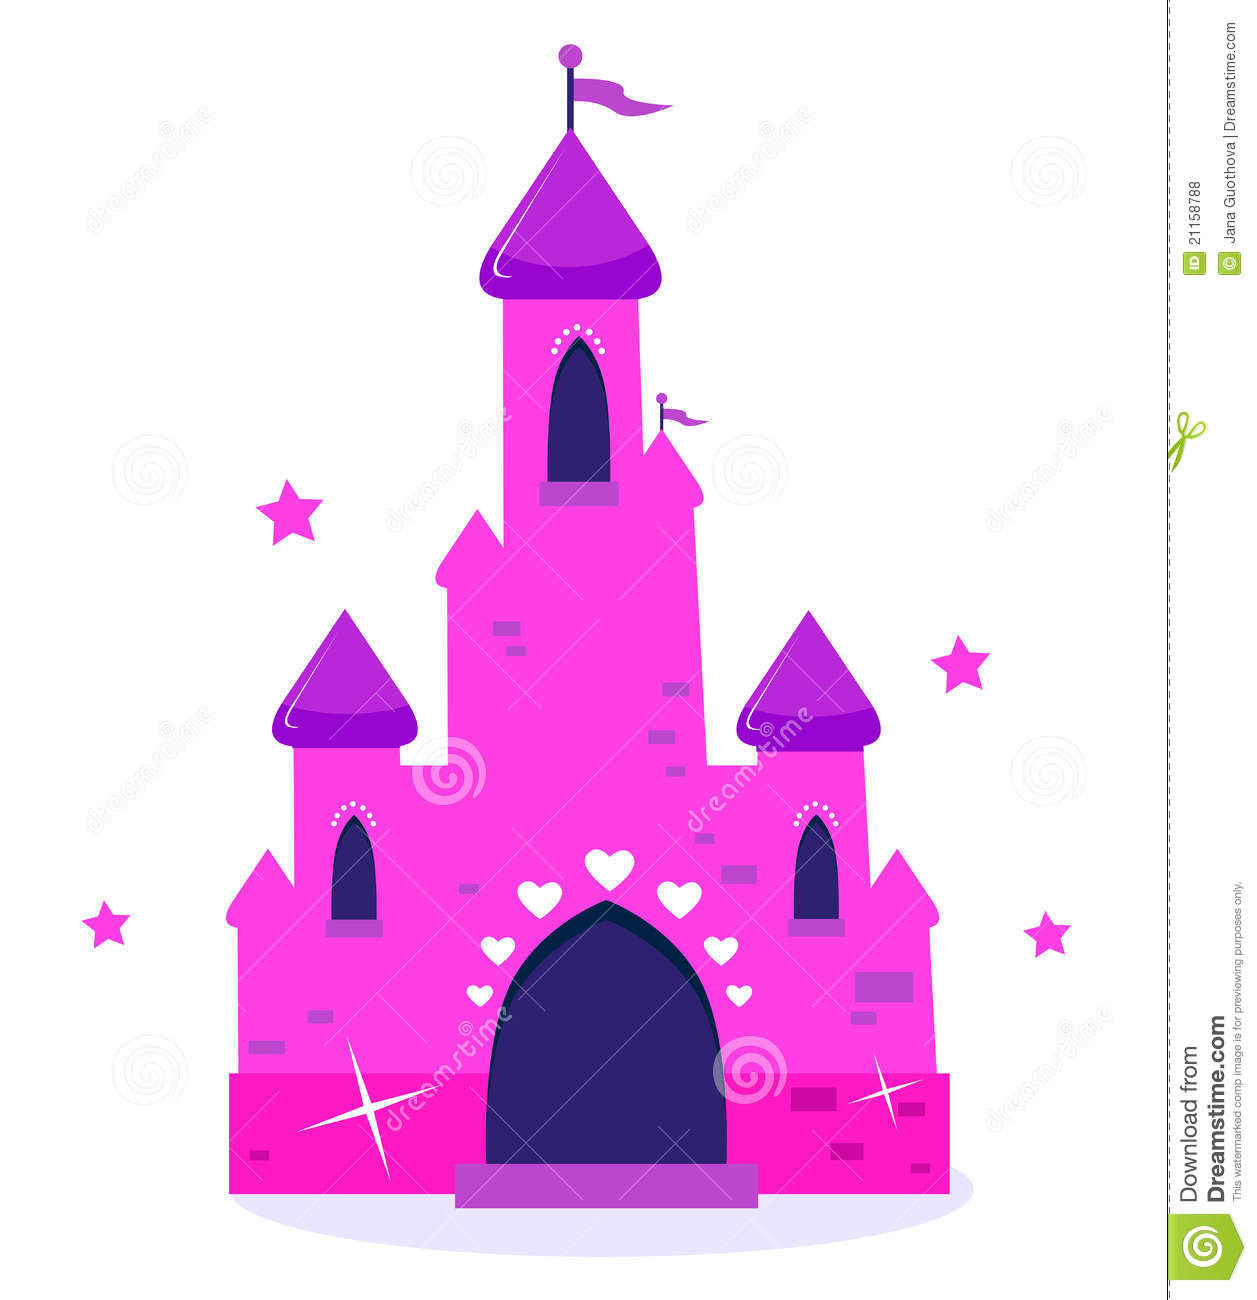 Chateau Rose De Dessin Anime De Princesse D Isolement Sur Le Blanc Illustration De Vecteur Illustration Du Isolement Rose 21158788